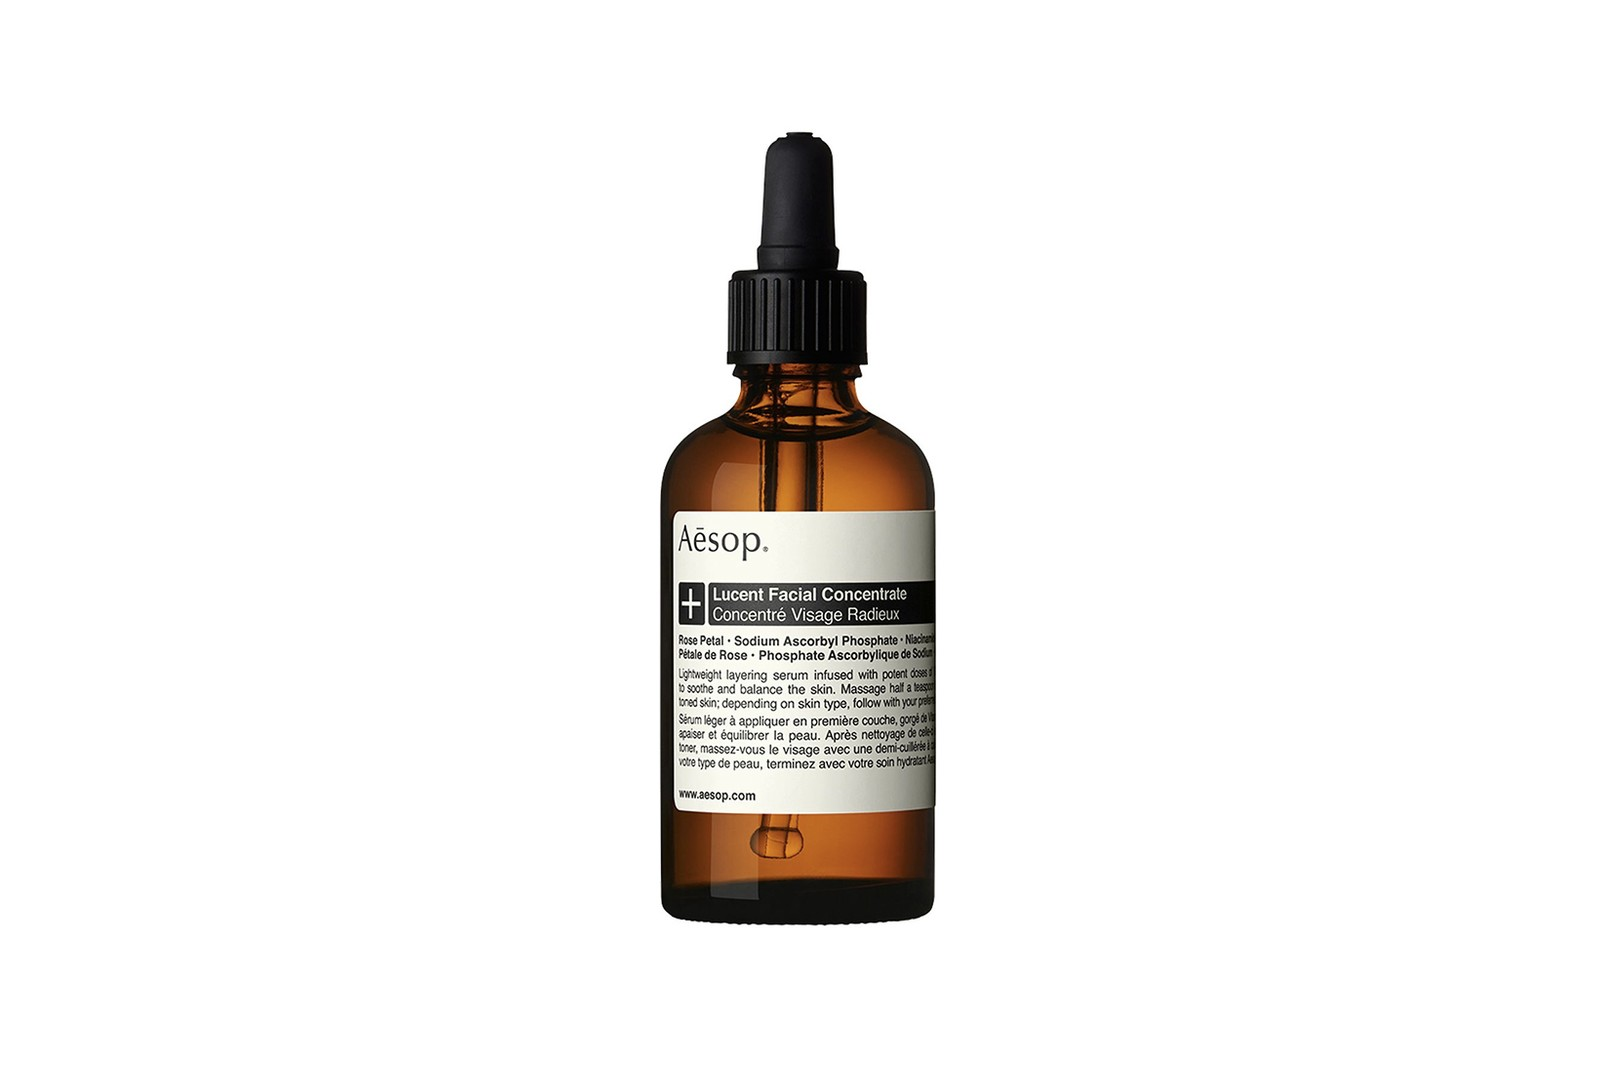 best face serums skincare vitamin c night hydrating everyday aesop clean beauty